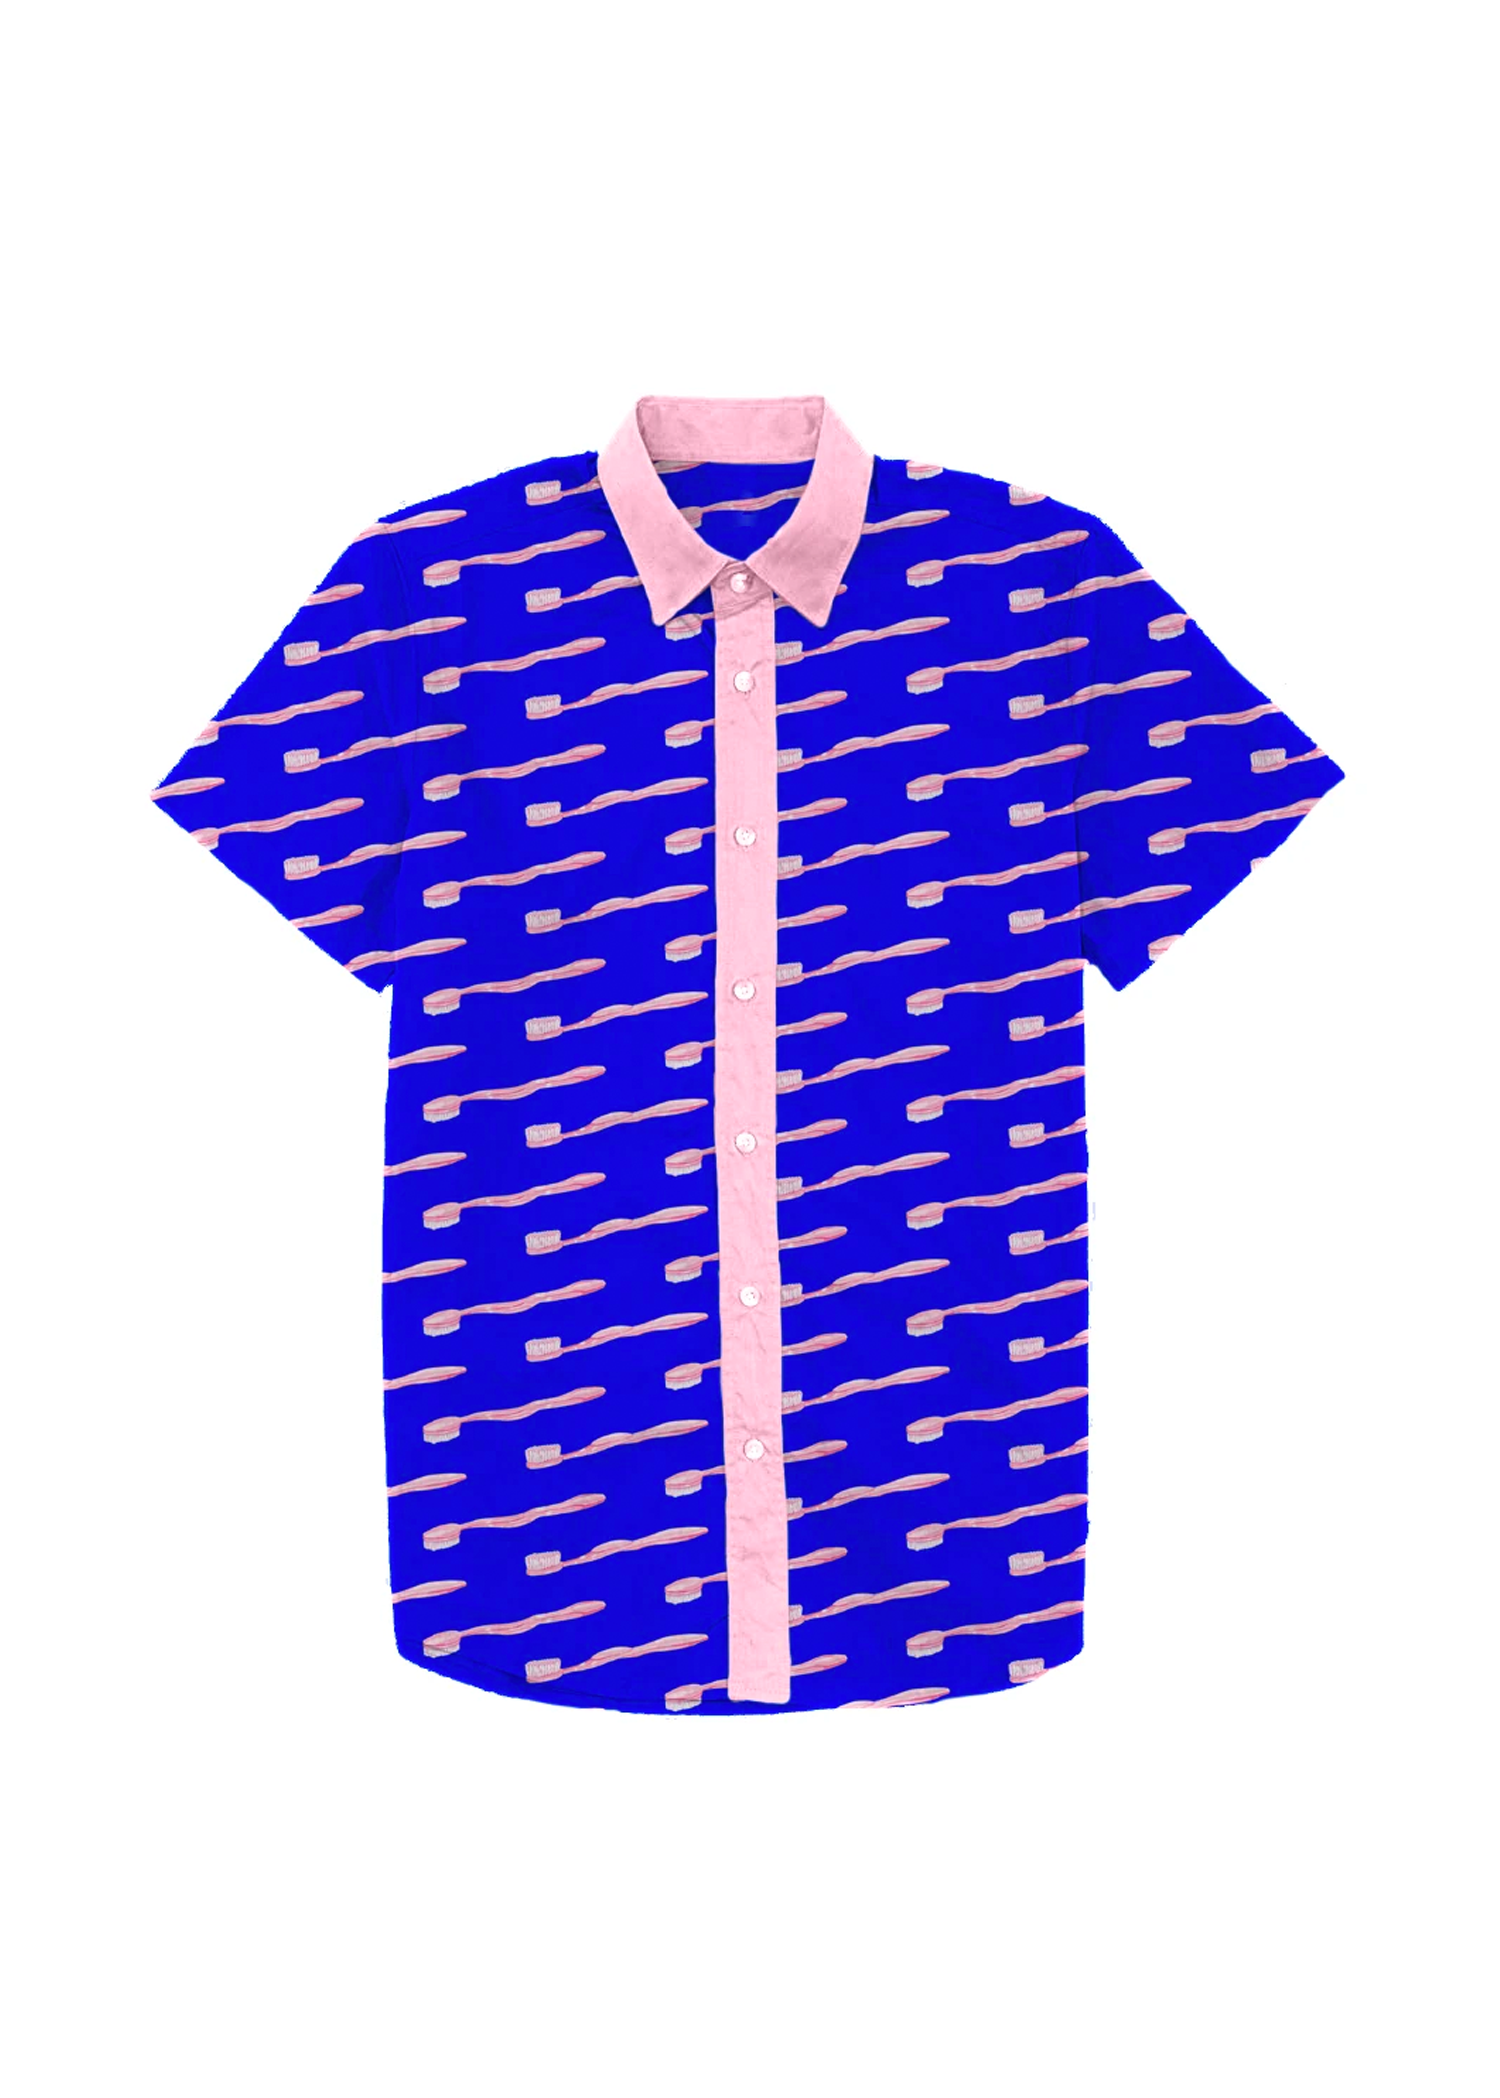 toothbrush dad shirt in blue & pink